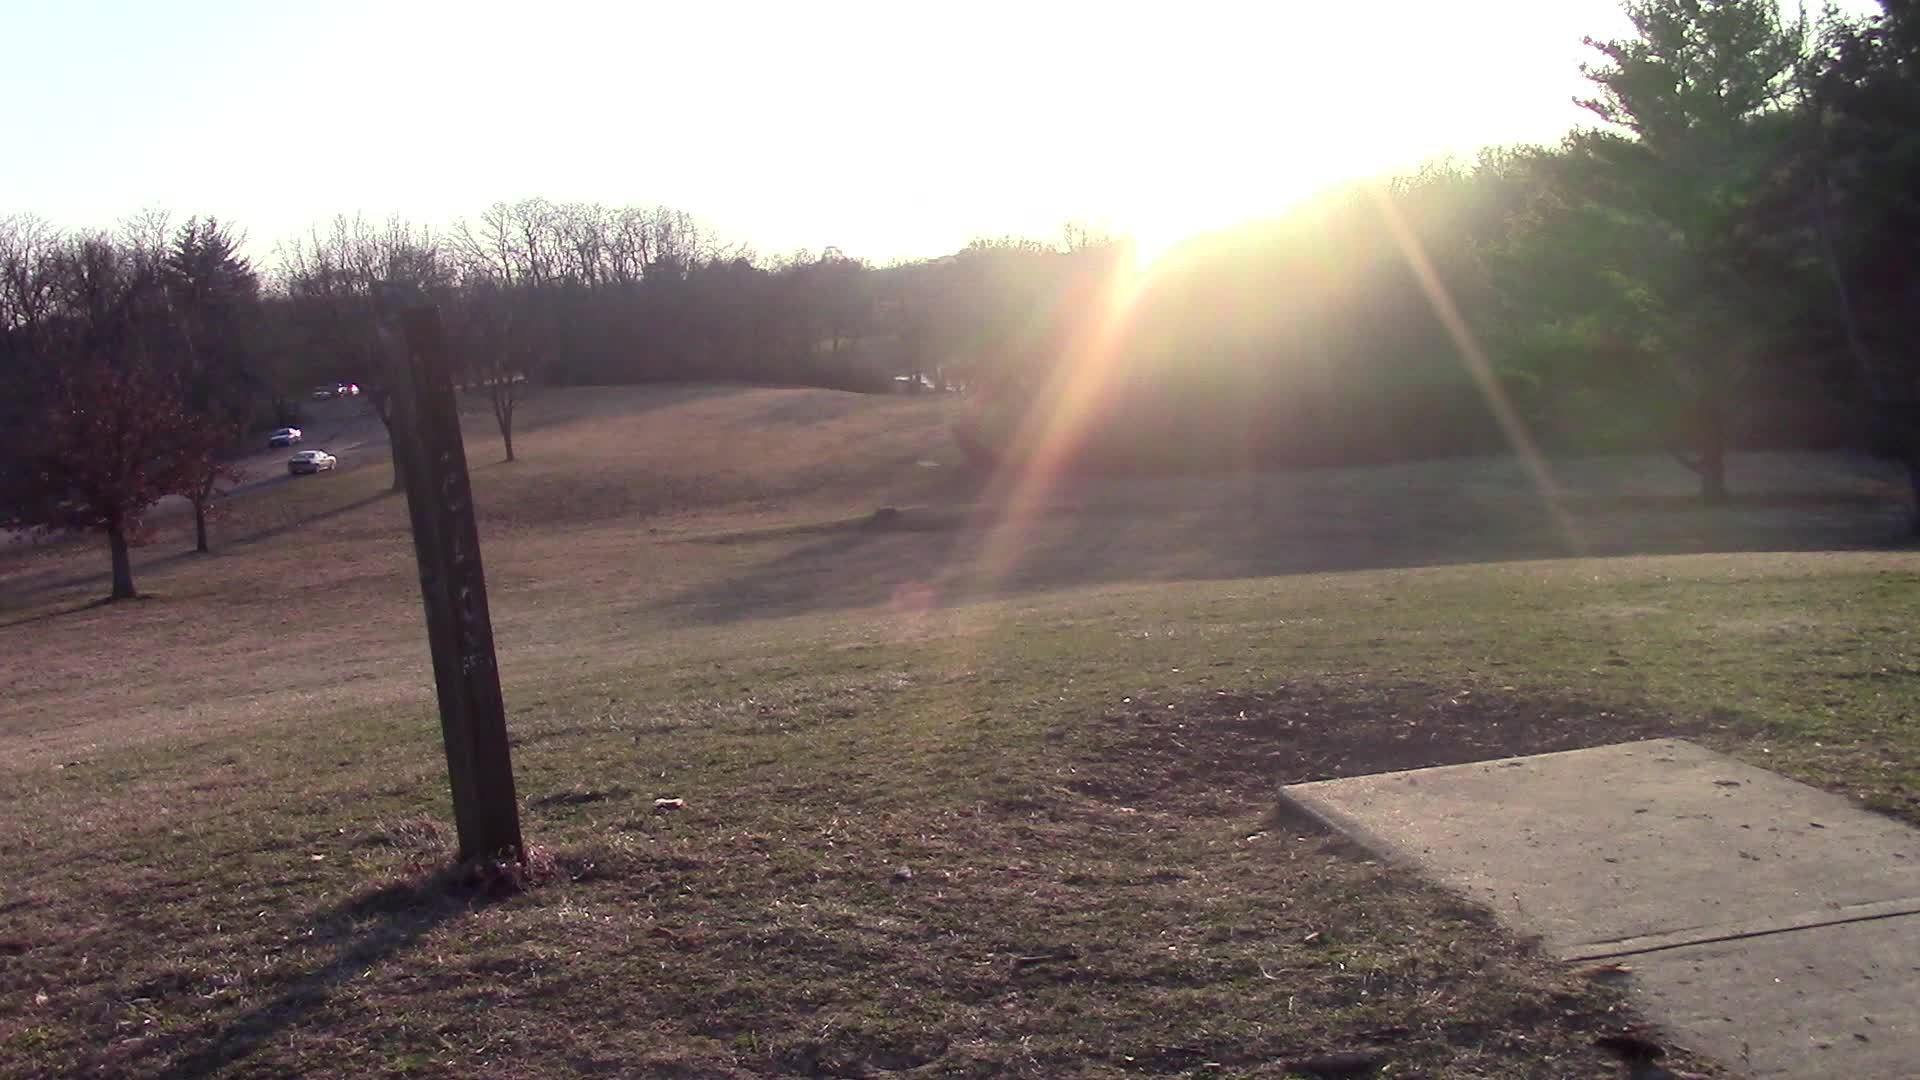 discgolf, Tried to get me throwing a bomb drive on camera [Gif] (reddit) GIFs